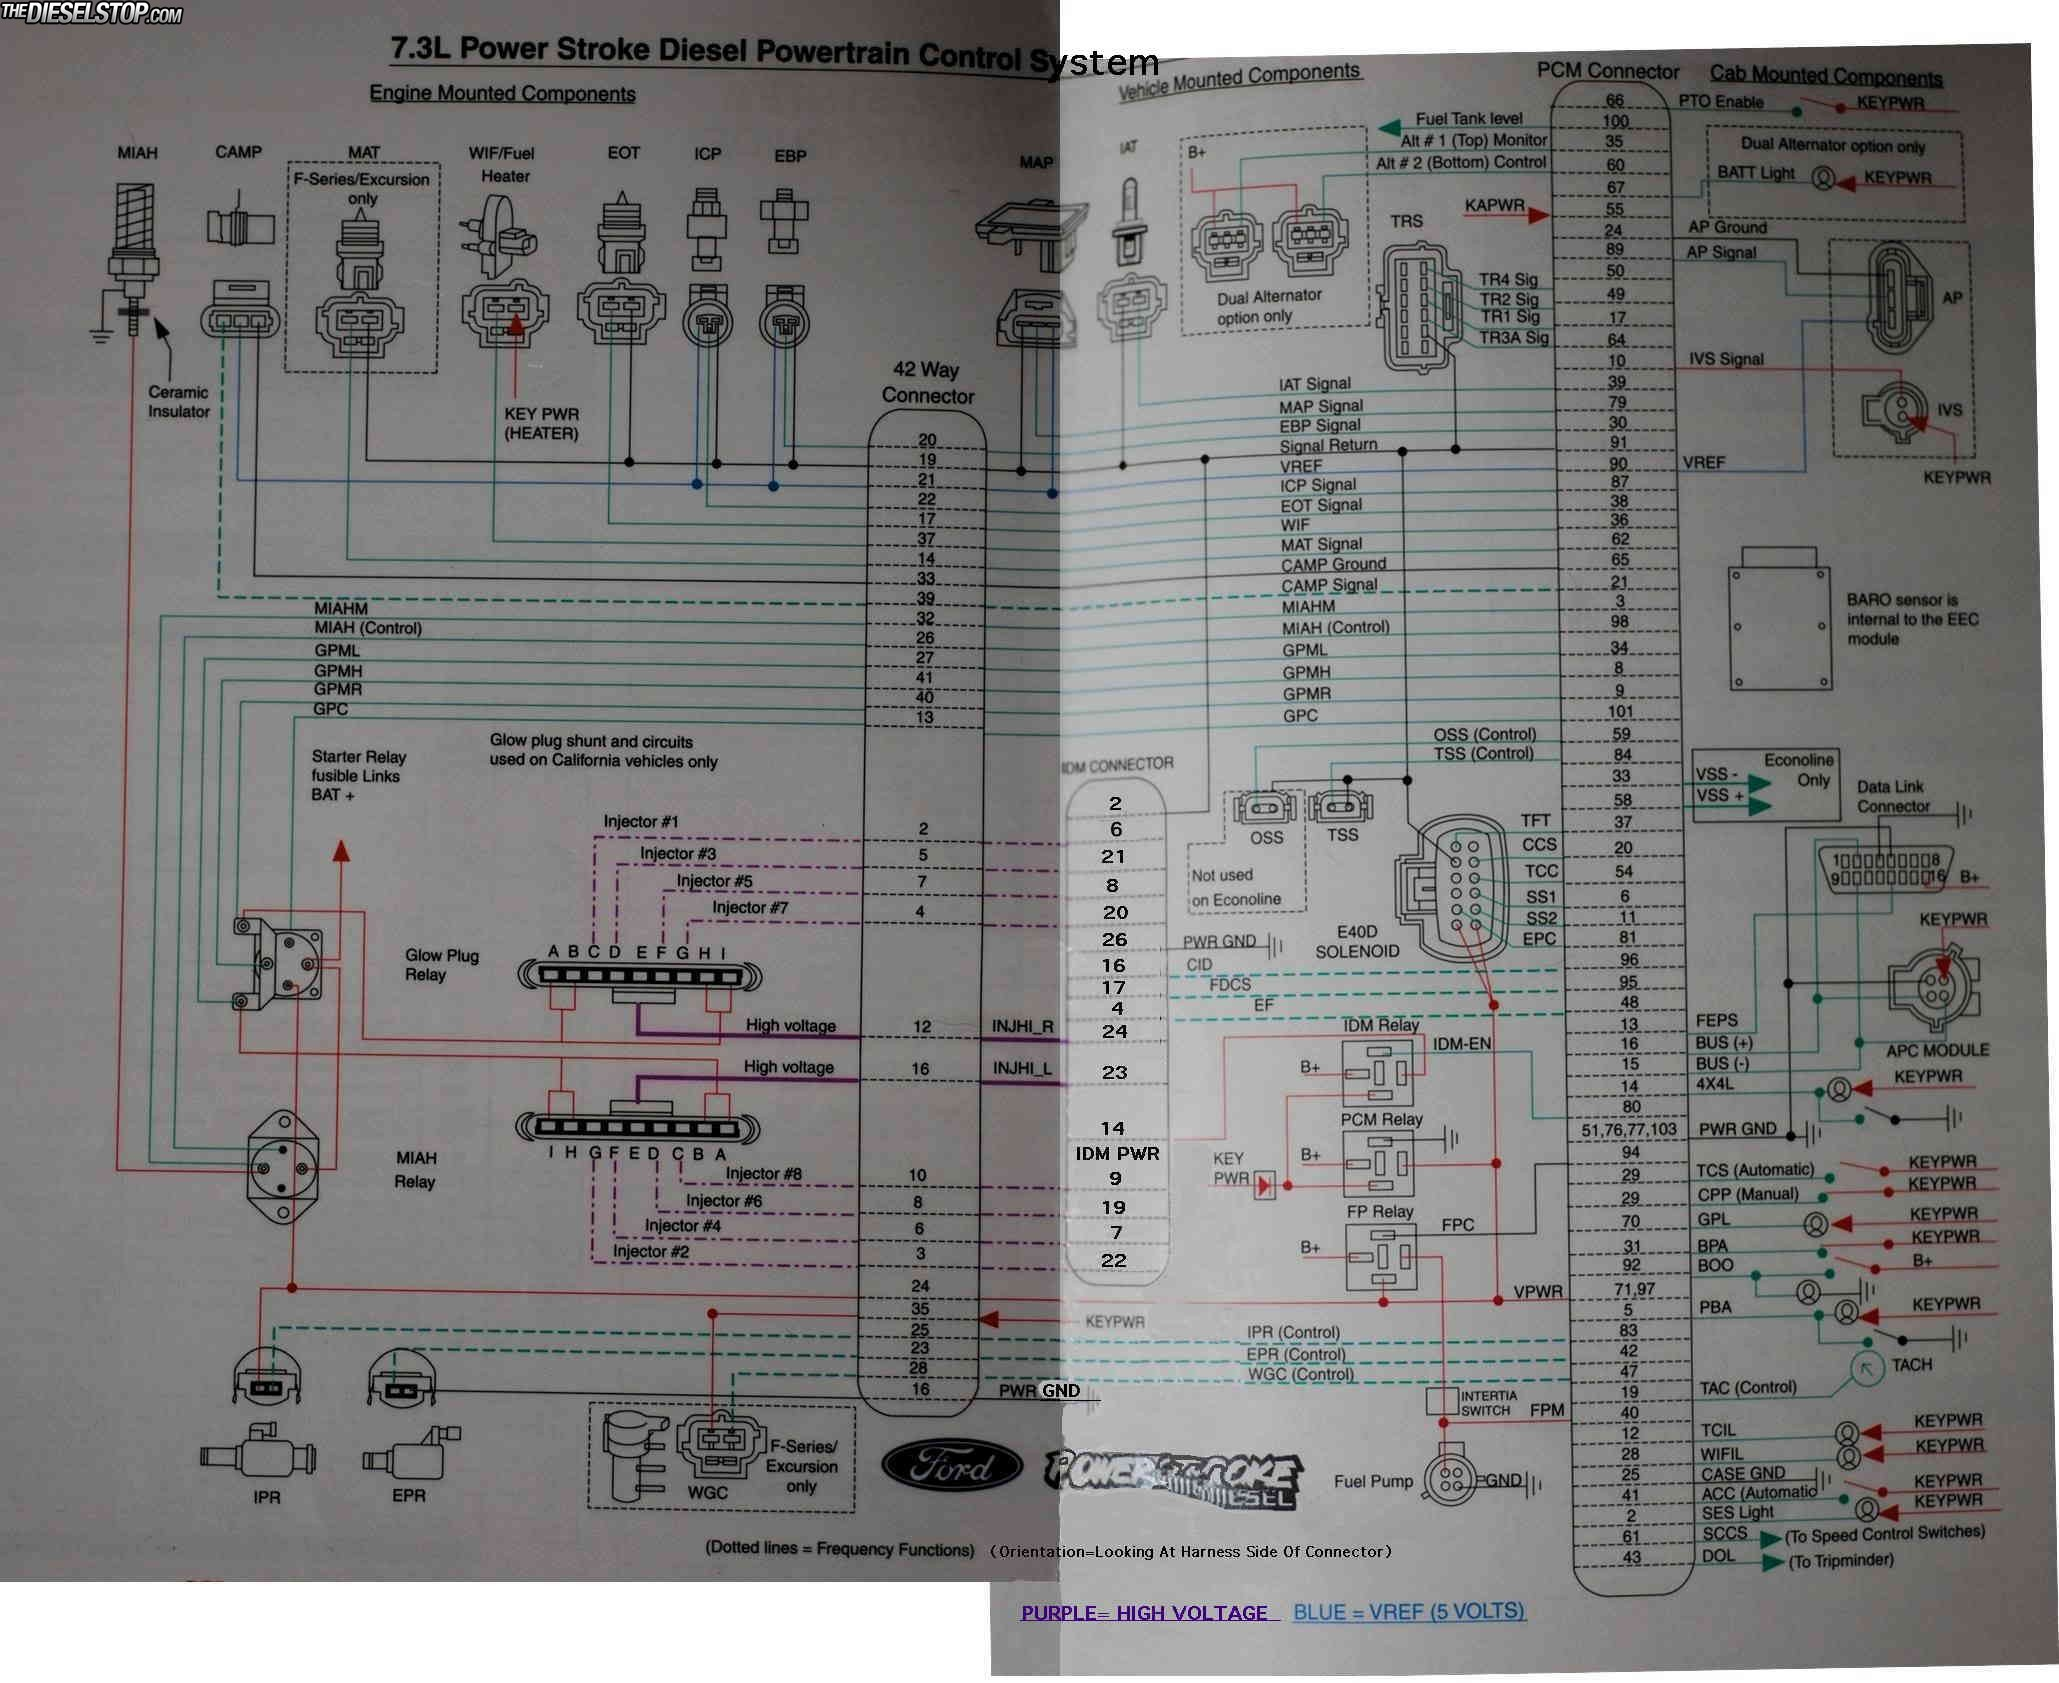 1996 ford F250 Tail Light Wiring Diagram 7 3l Wiring Schematic Printable Very Handy Diesel forum Of 1996 ford F250 Tail Light Wiring Diagram